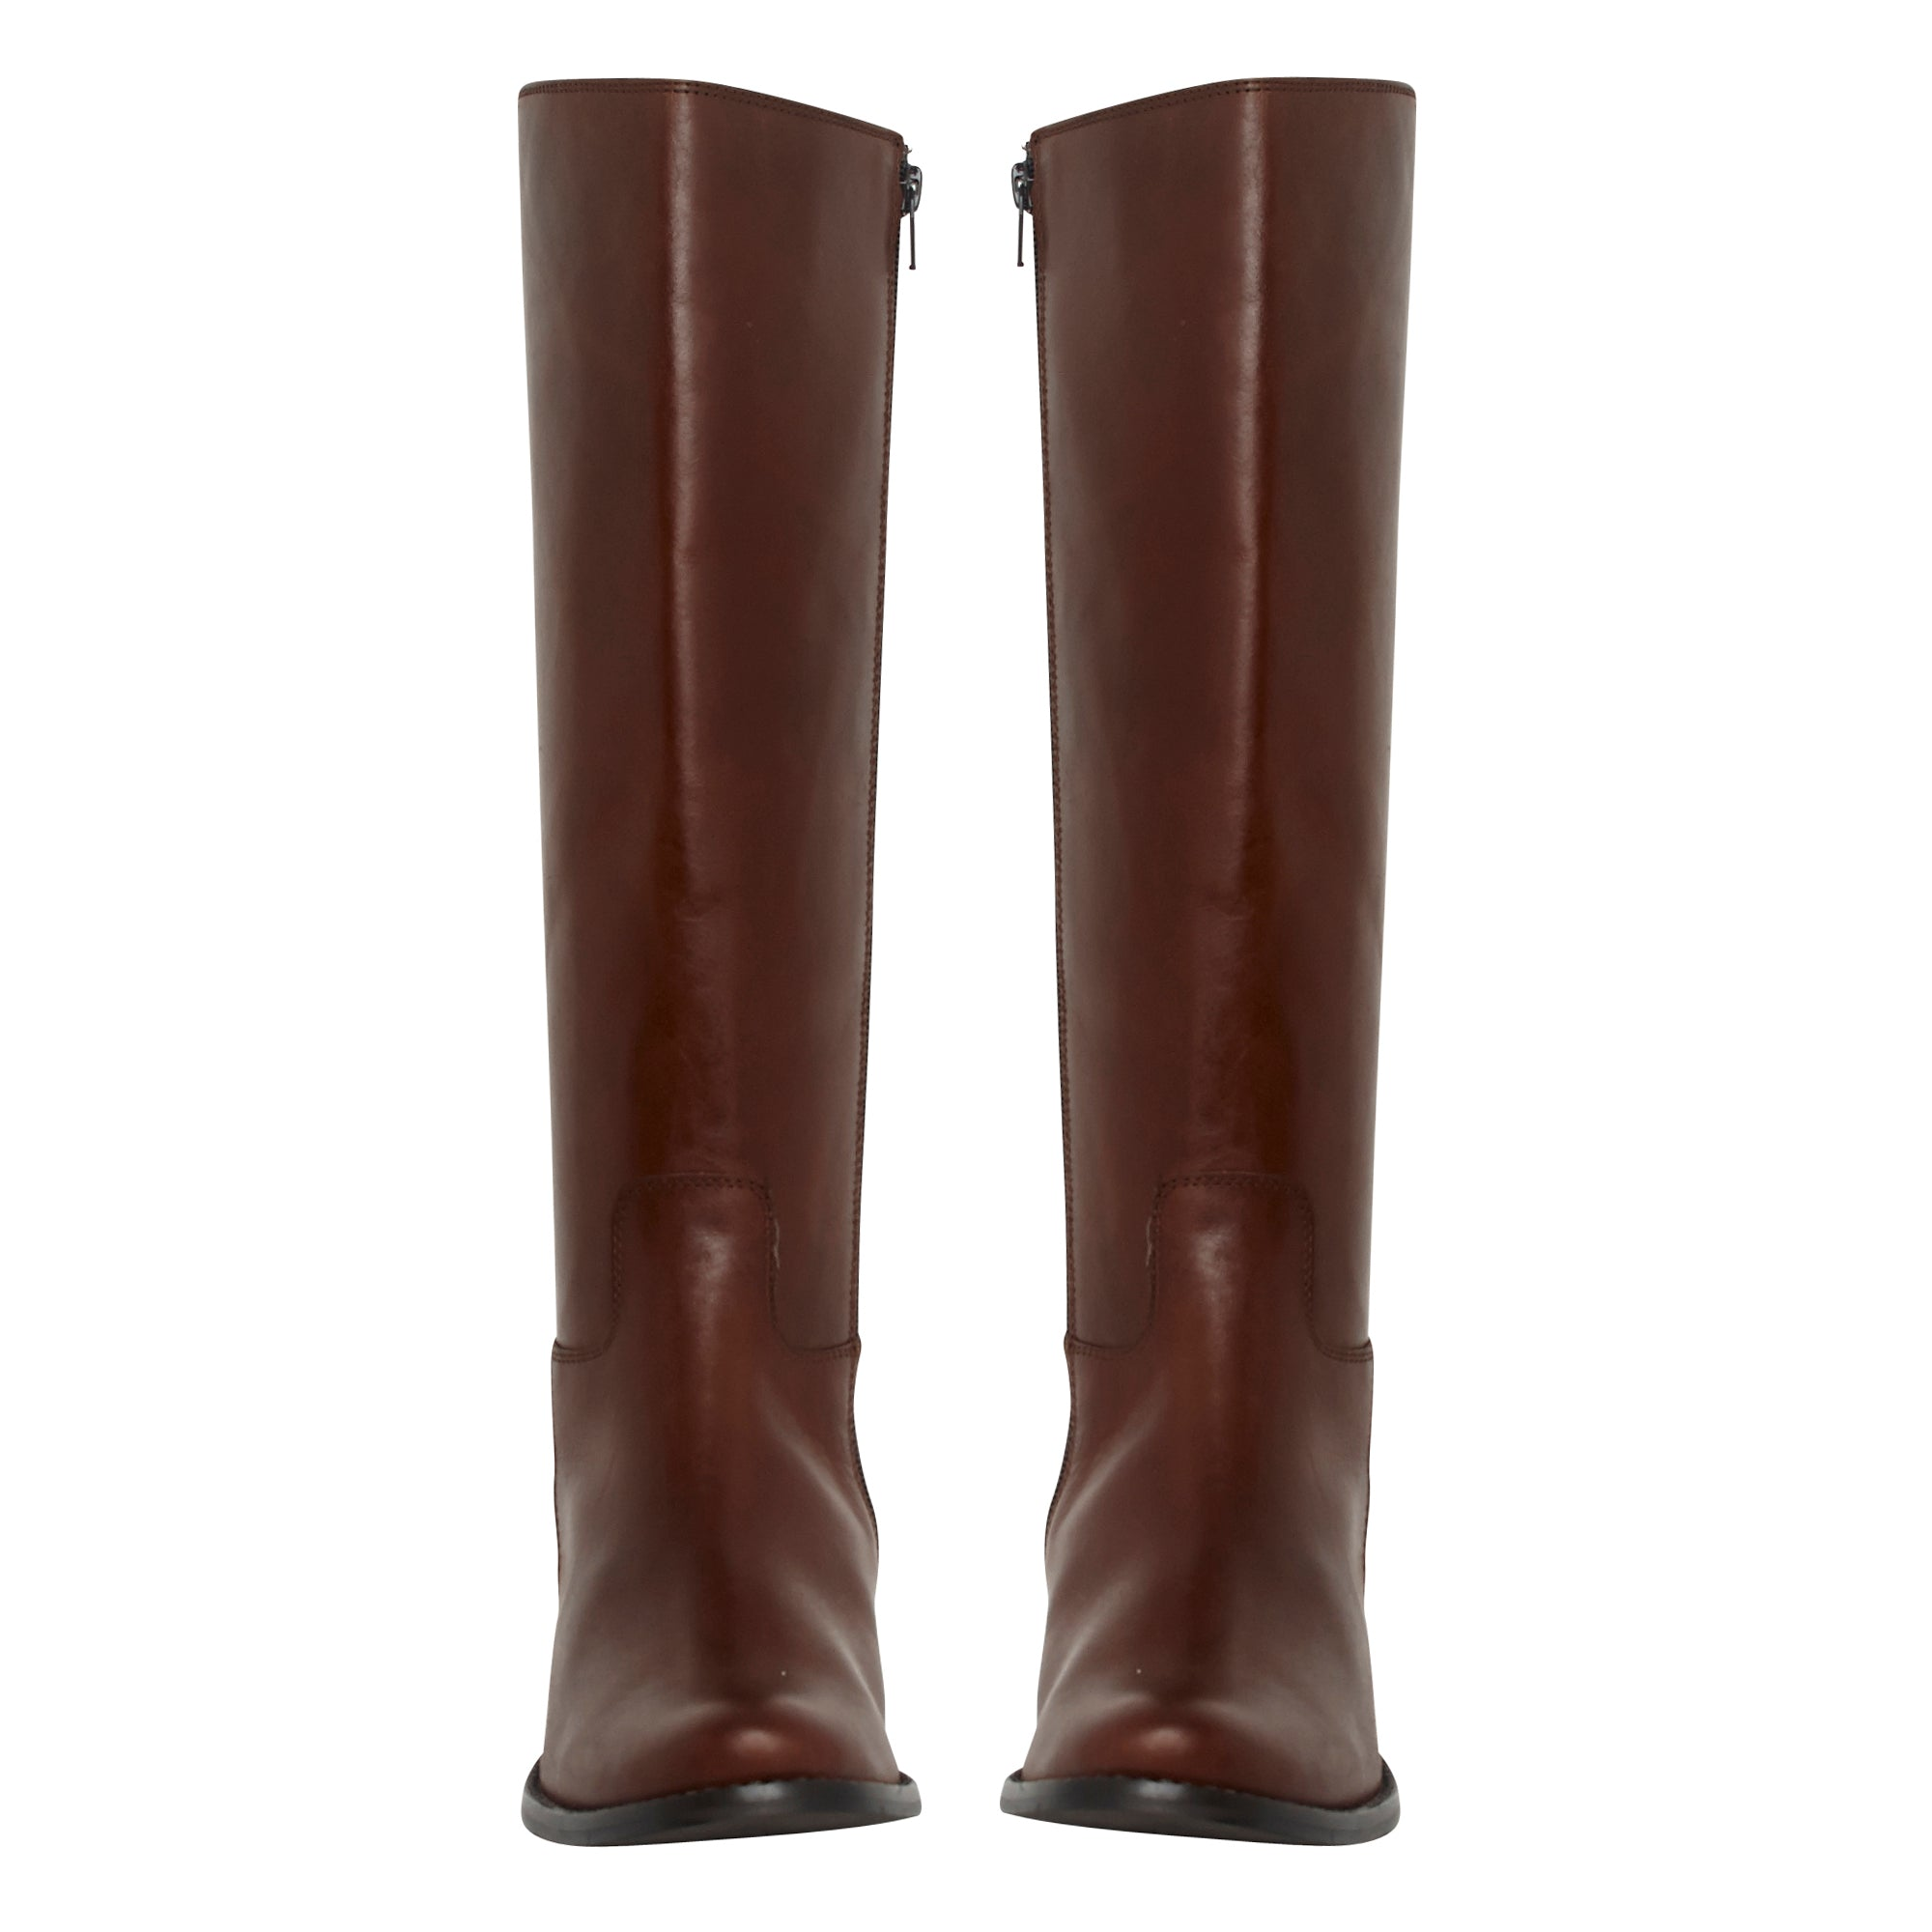 Ladies Long Boots - 32956 brown